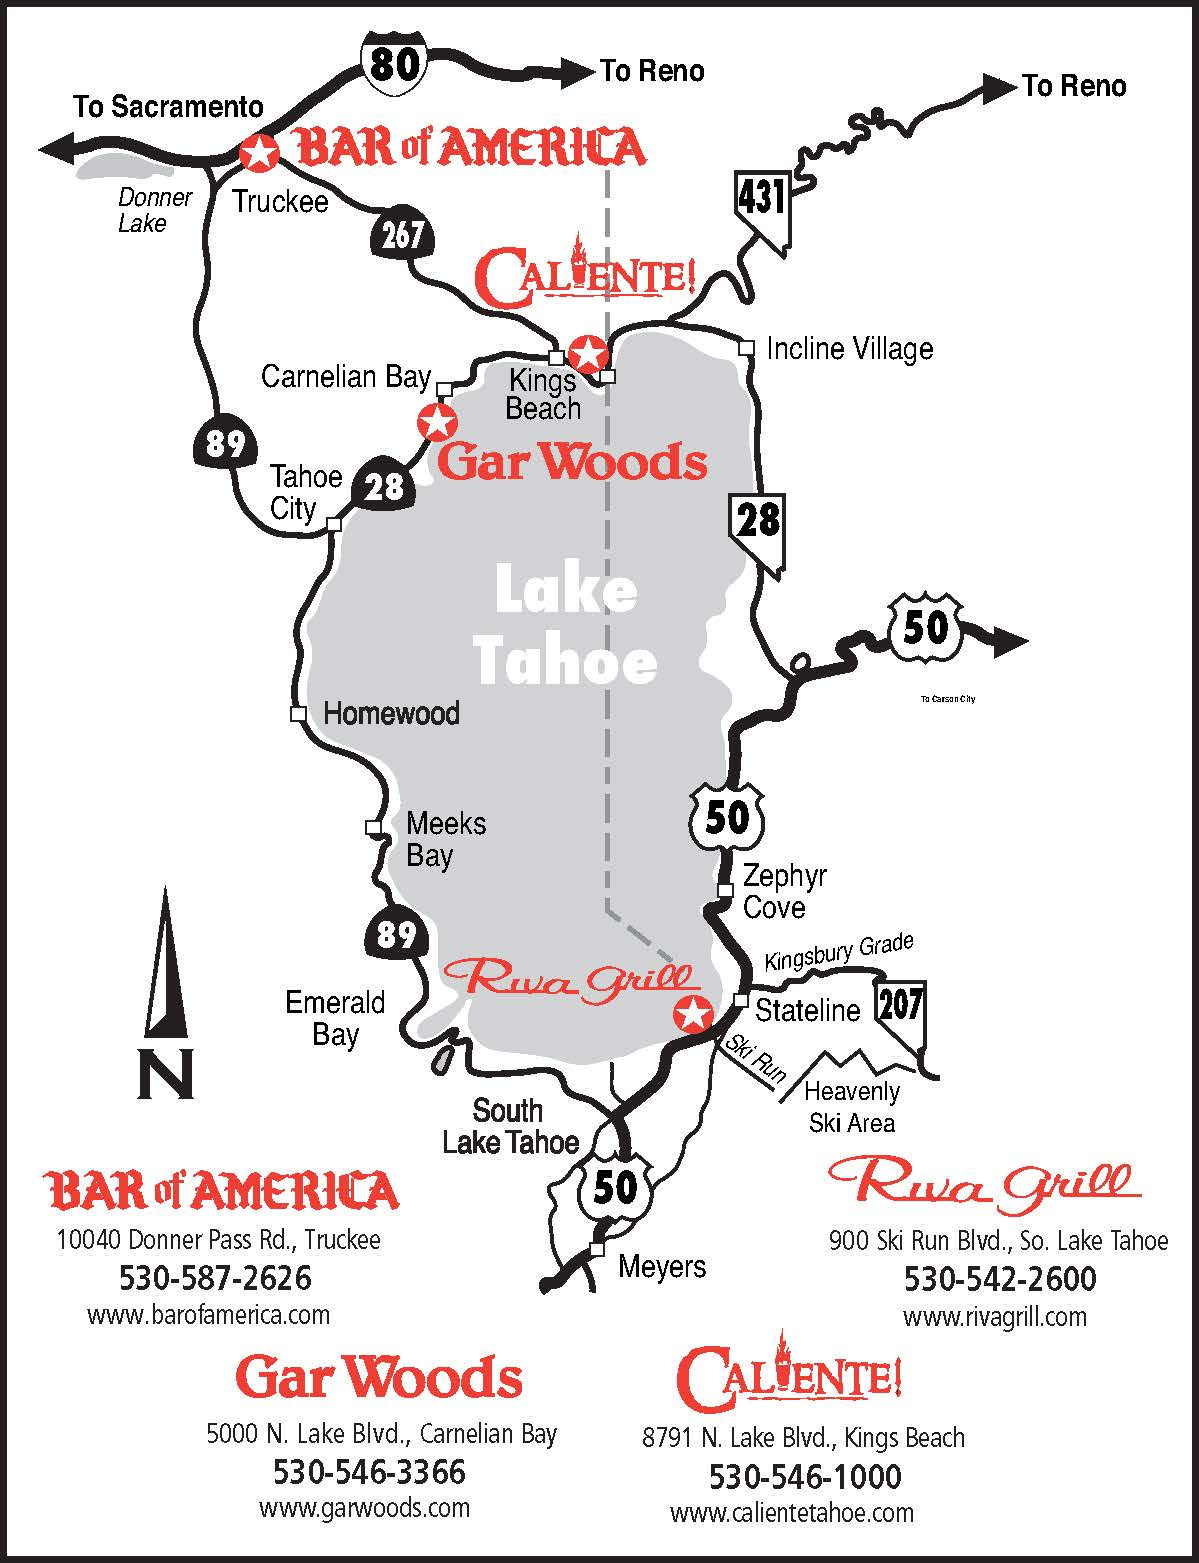 Caliente - Home on santa fe springs map, fresno map, coloma map, rancho murieta map, brentwood map, loomis map, thunderbird lodge map, lake tahoe map, dollar point map, gardena map, pollock pines map, berkeley map, donner pass map, mons map,